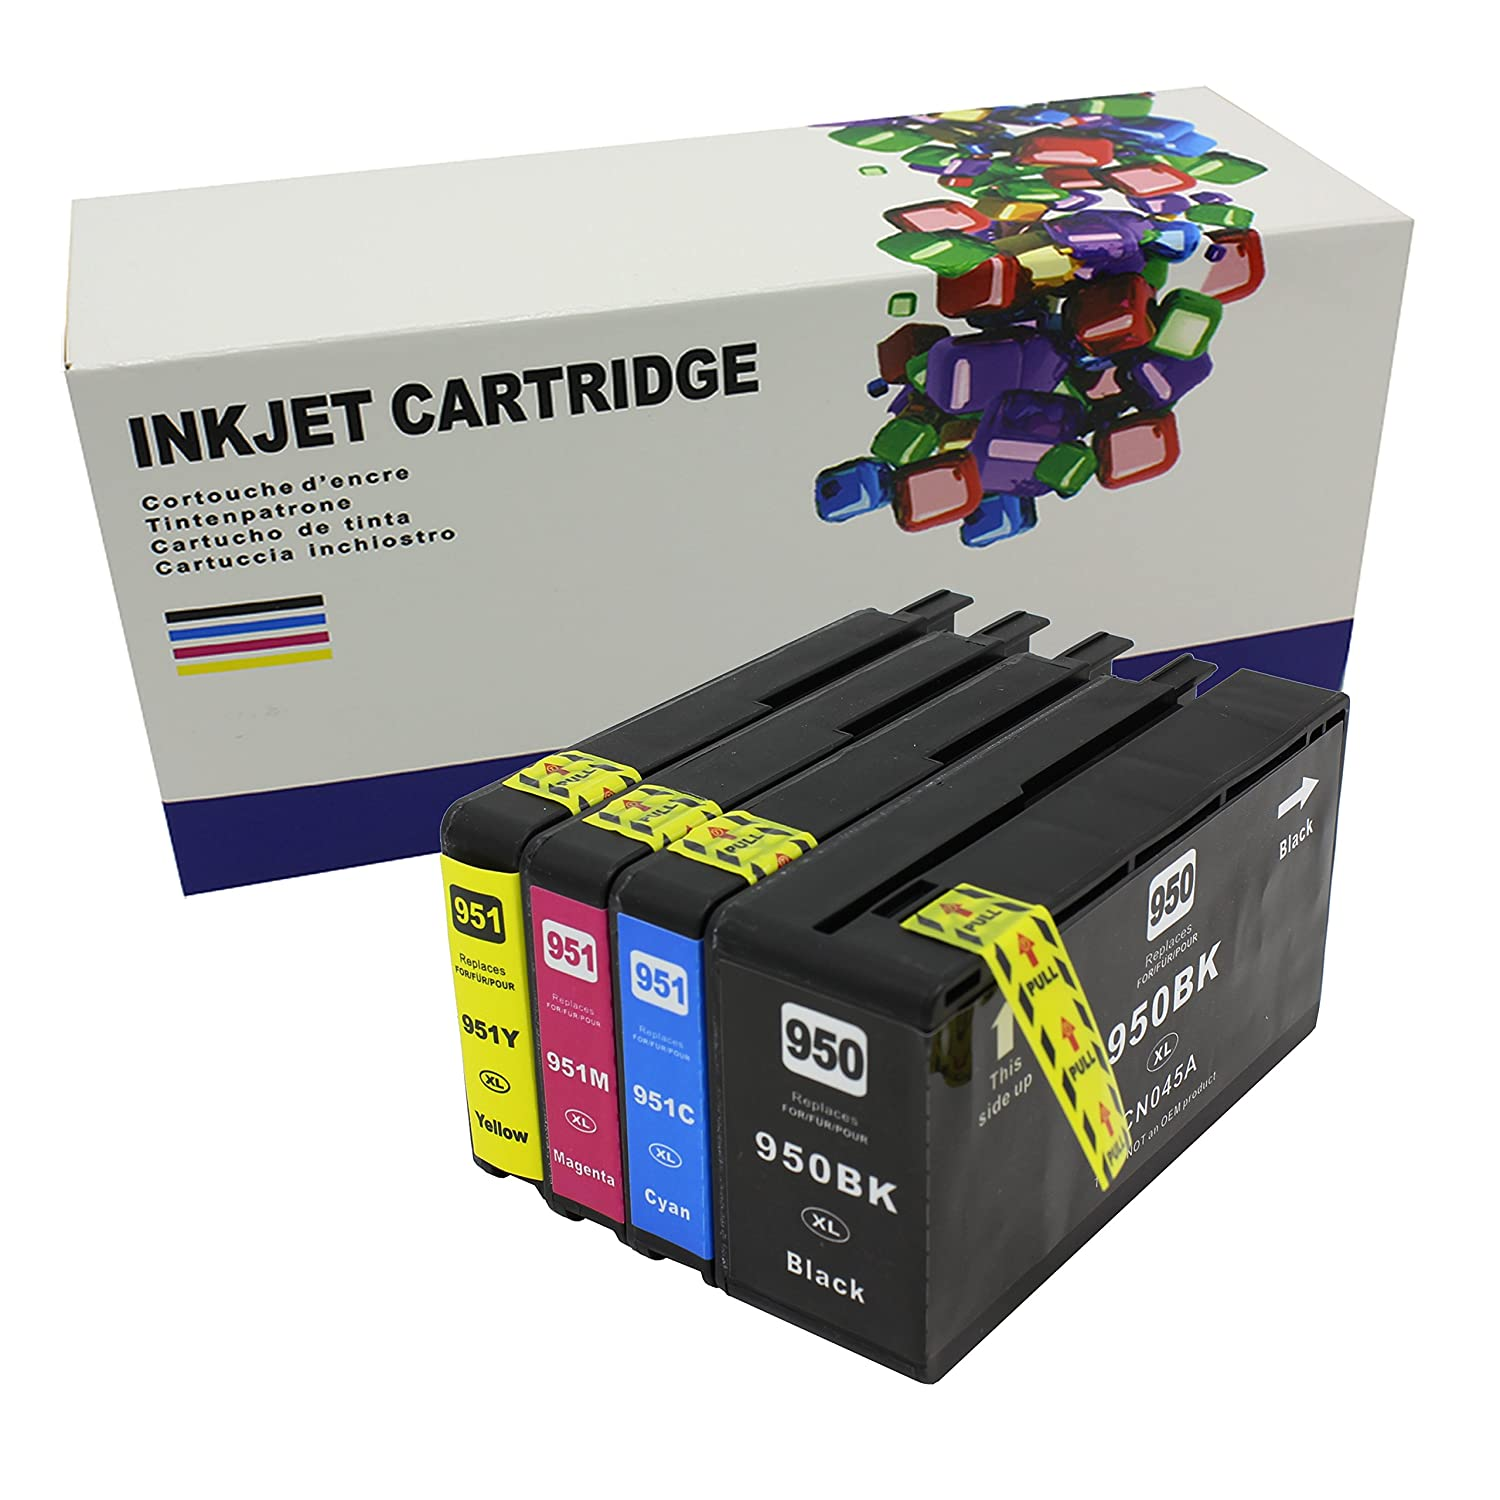 Generic 950xl Black And 951 Tri Color Cyan Magenta Tinta Catridge Hp 950 Xl Original Yellow Combo Saver 4 Cartridges In One Pack For Officejet Pro 8100 8600 251 276